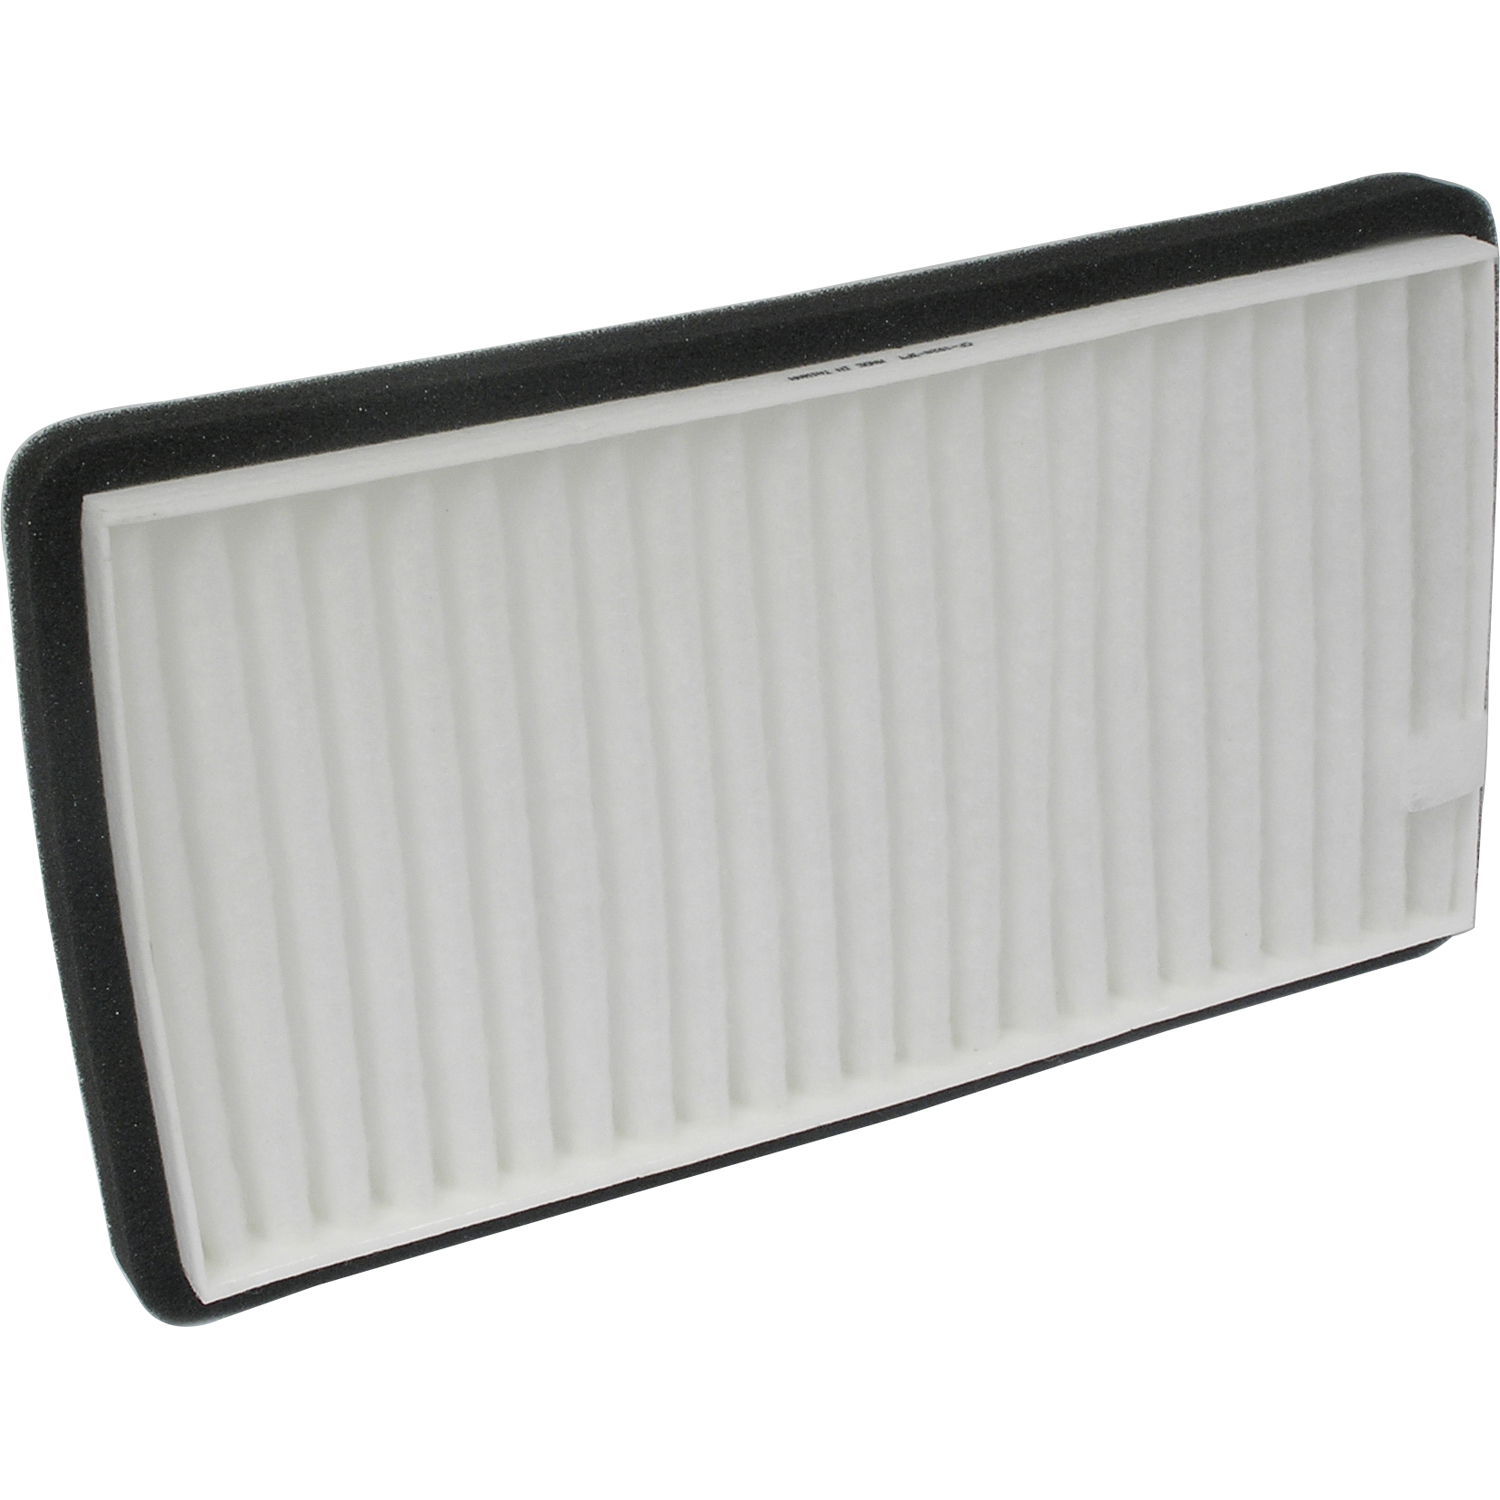 New Cabin Air Filter FI 1028C - 64111393489 328i 318i 325i M3 325is 318ti 318is